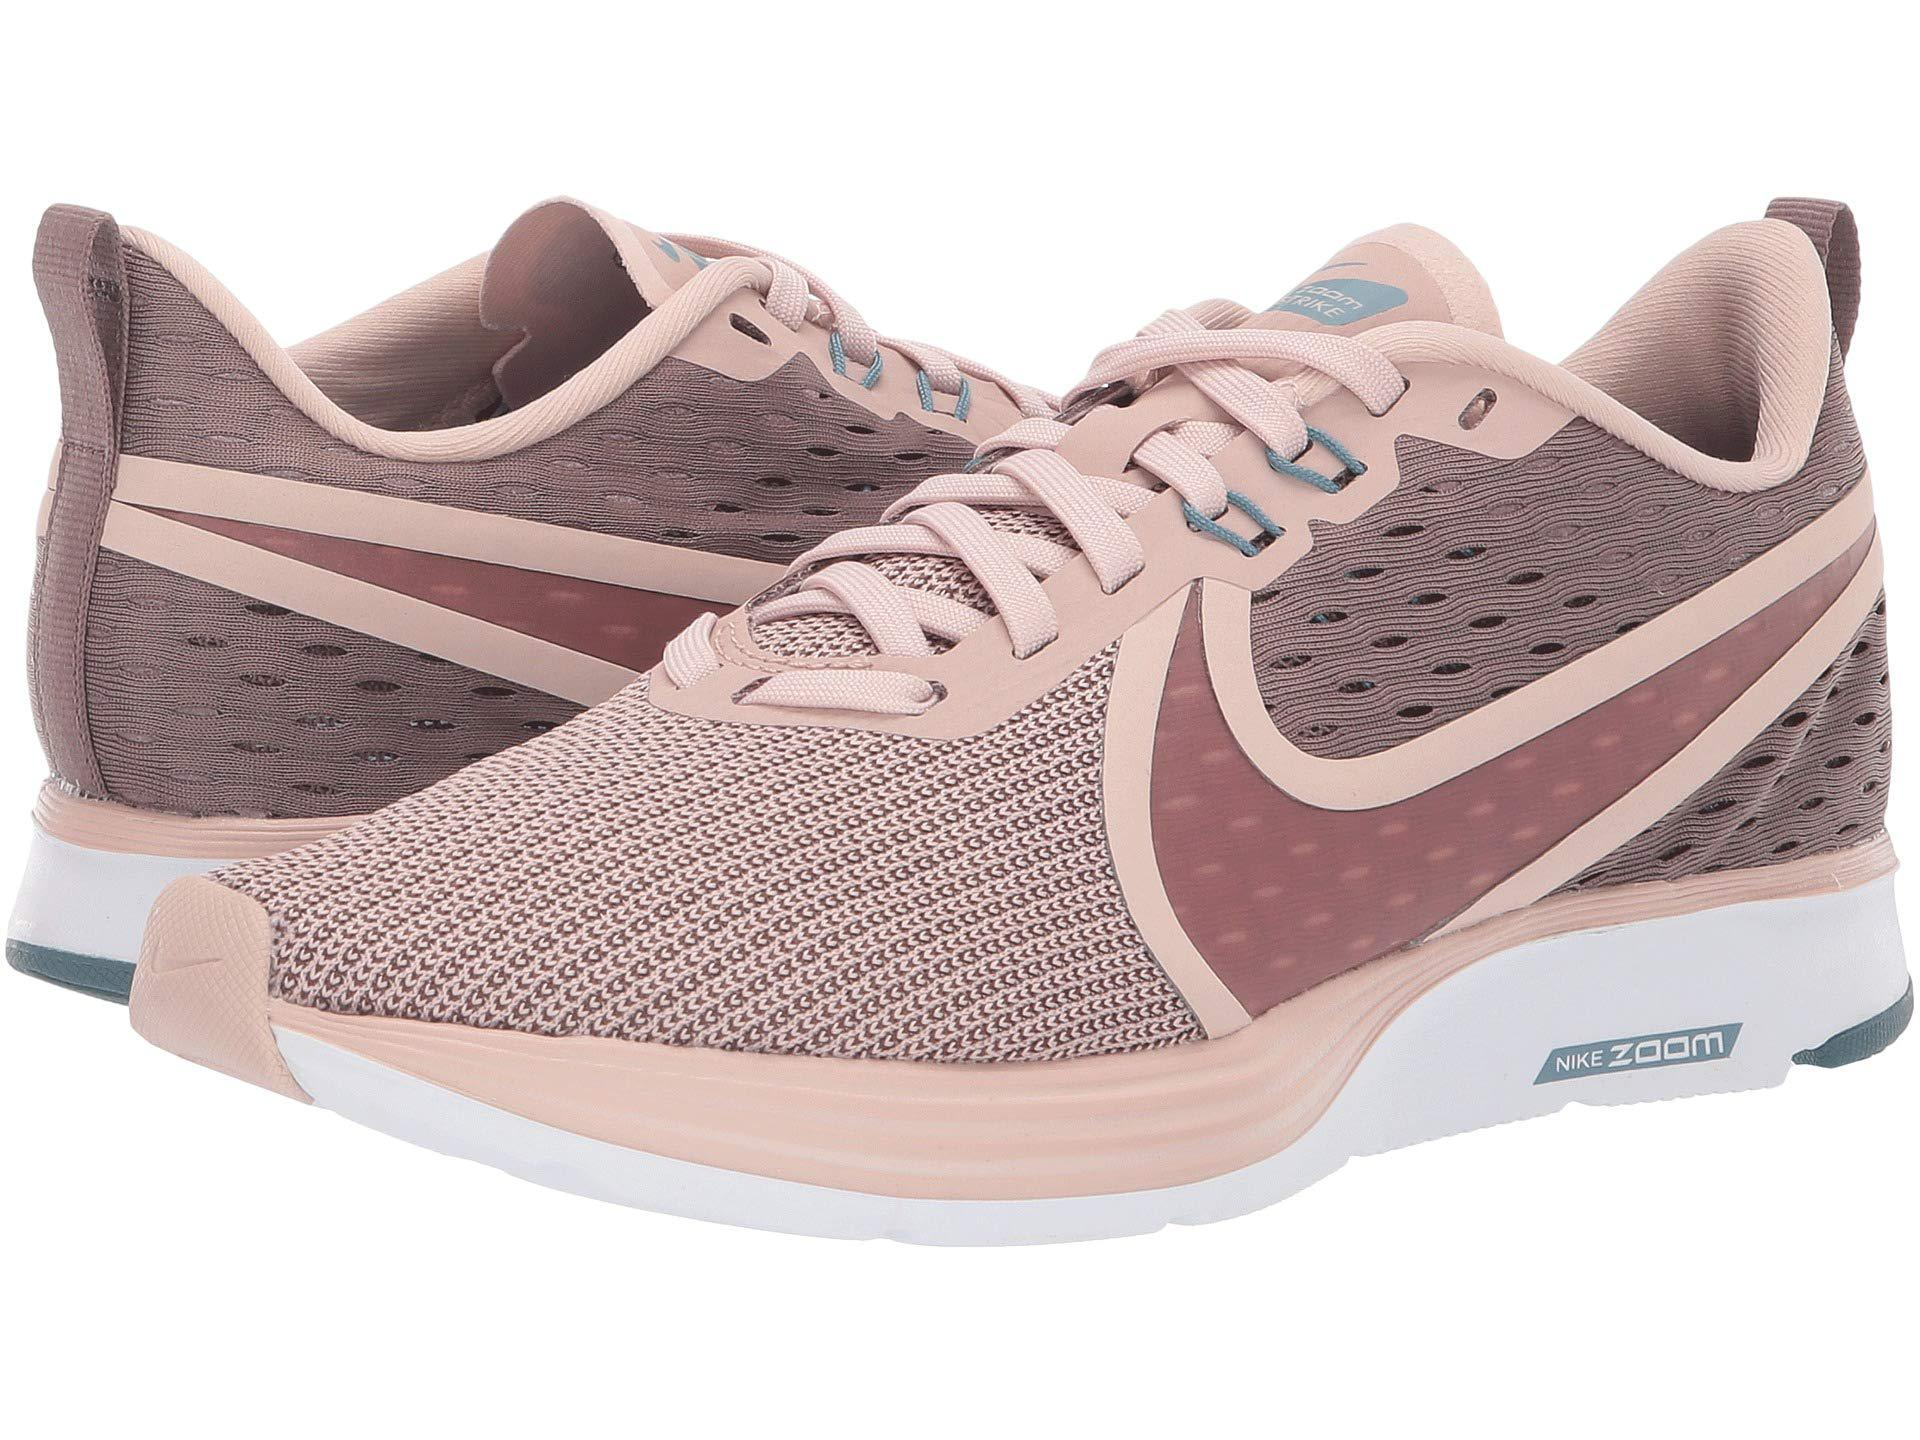 5864b5d5e65 Nike - Multicolor Zoom Strike 2 (particle Beige smokey Mauve) Women s Running  Shoes. View fullscreen